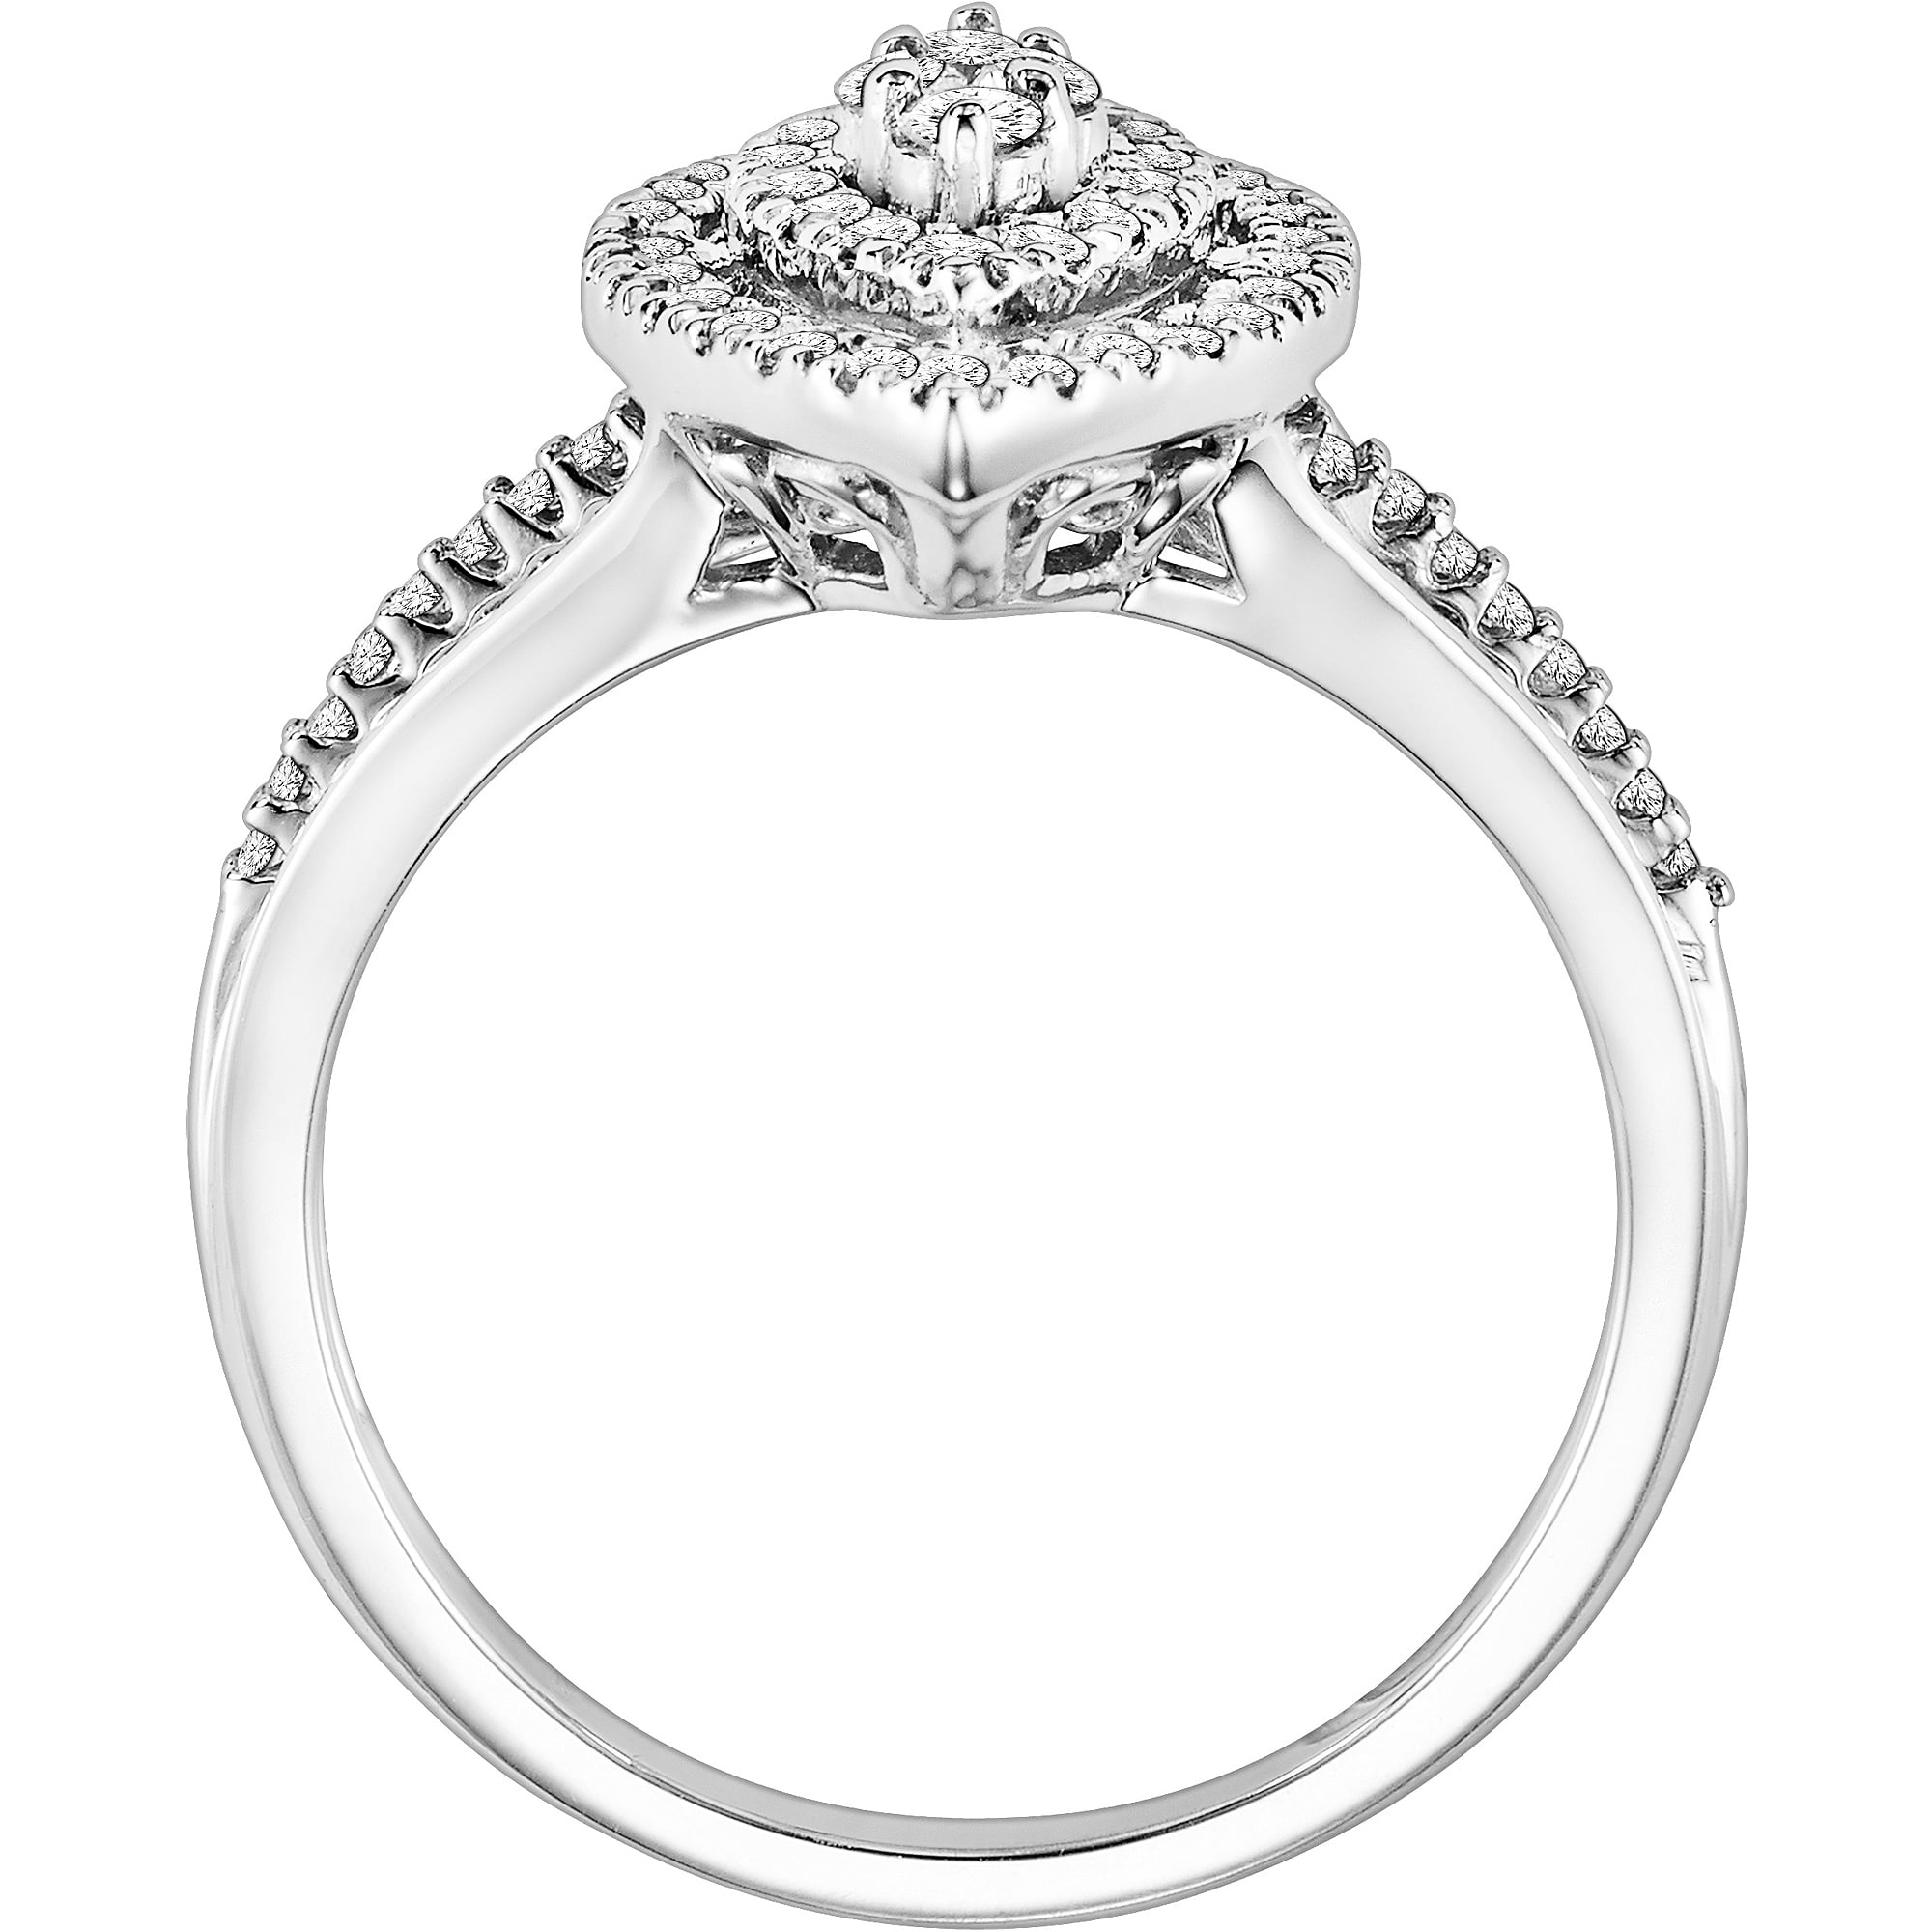 diamond engagement fine destination kay rings petite crescent bridal bottom scott ring koerber s full jewelry solid tacori your